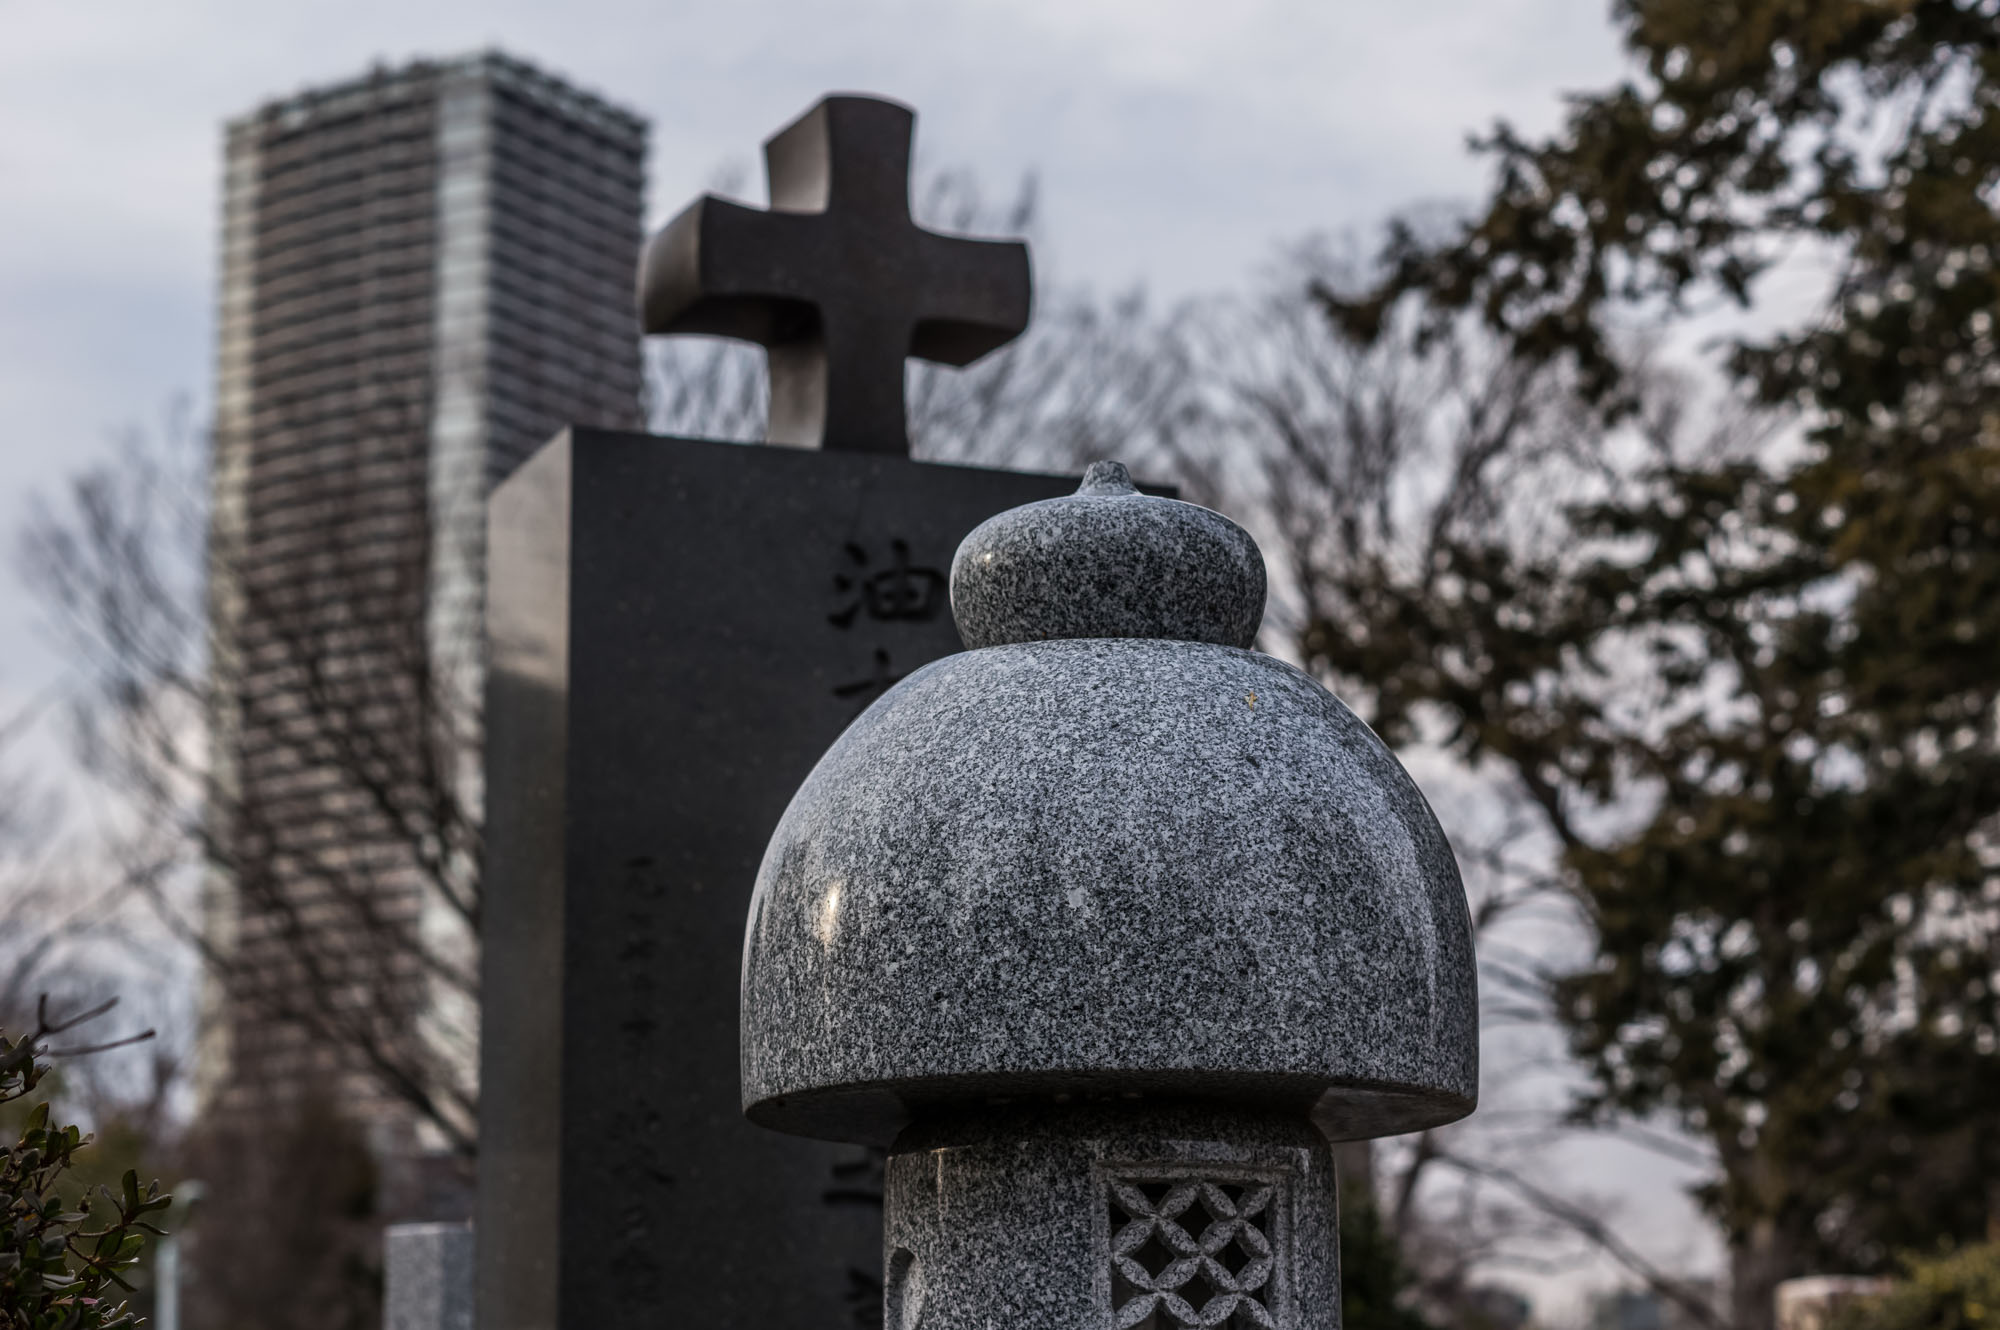 So much contrasting architecture to be found in Zoshigaya cemetery